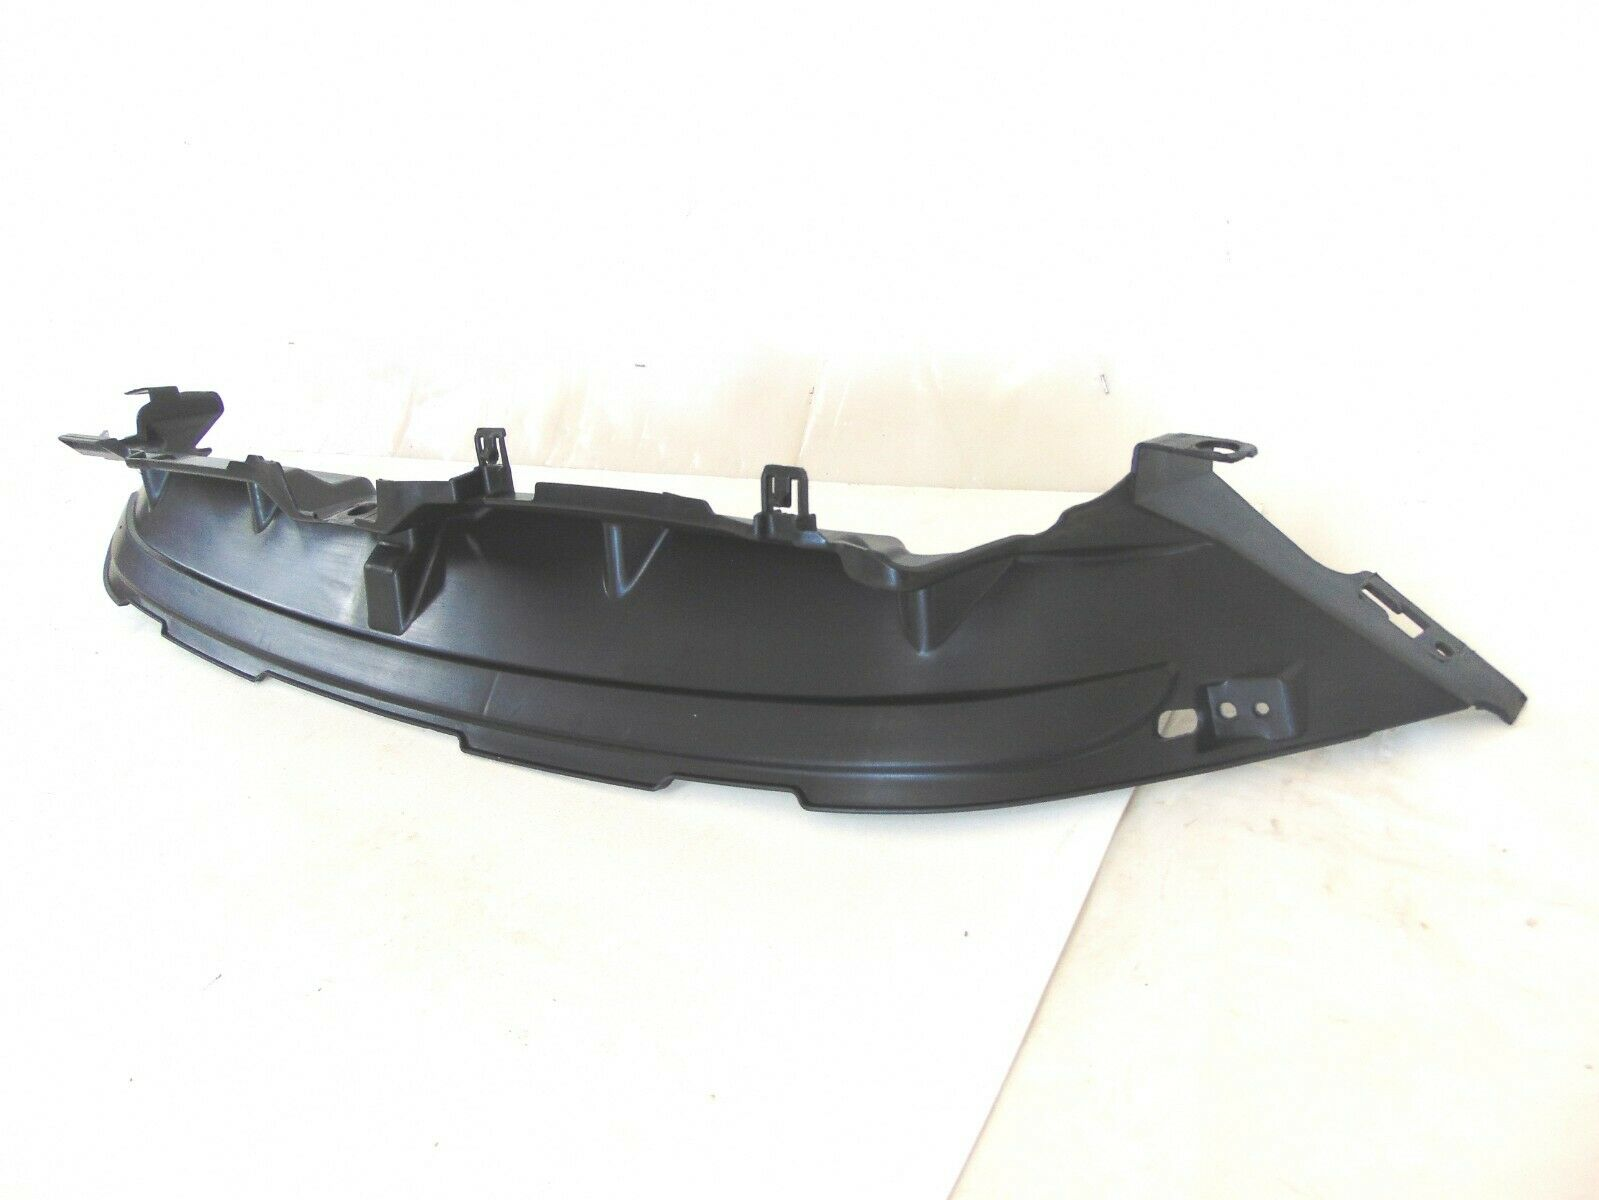 FORD OEM Fiesta Radiator Core Support-Upper Shield Cover Panel D2BZ58001A04A